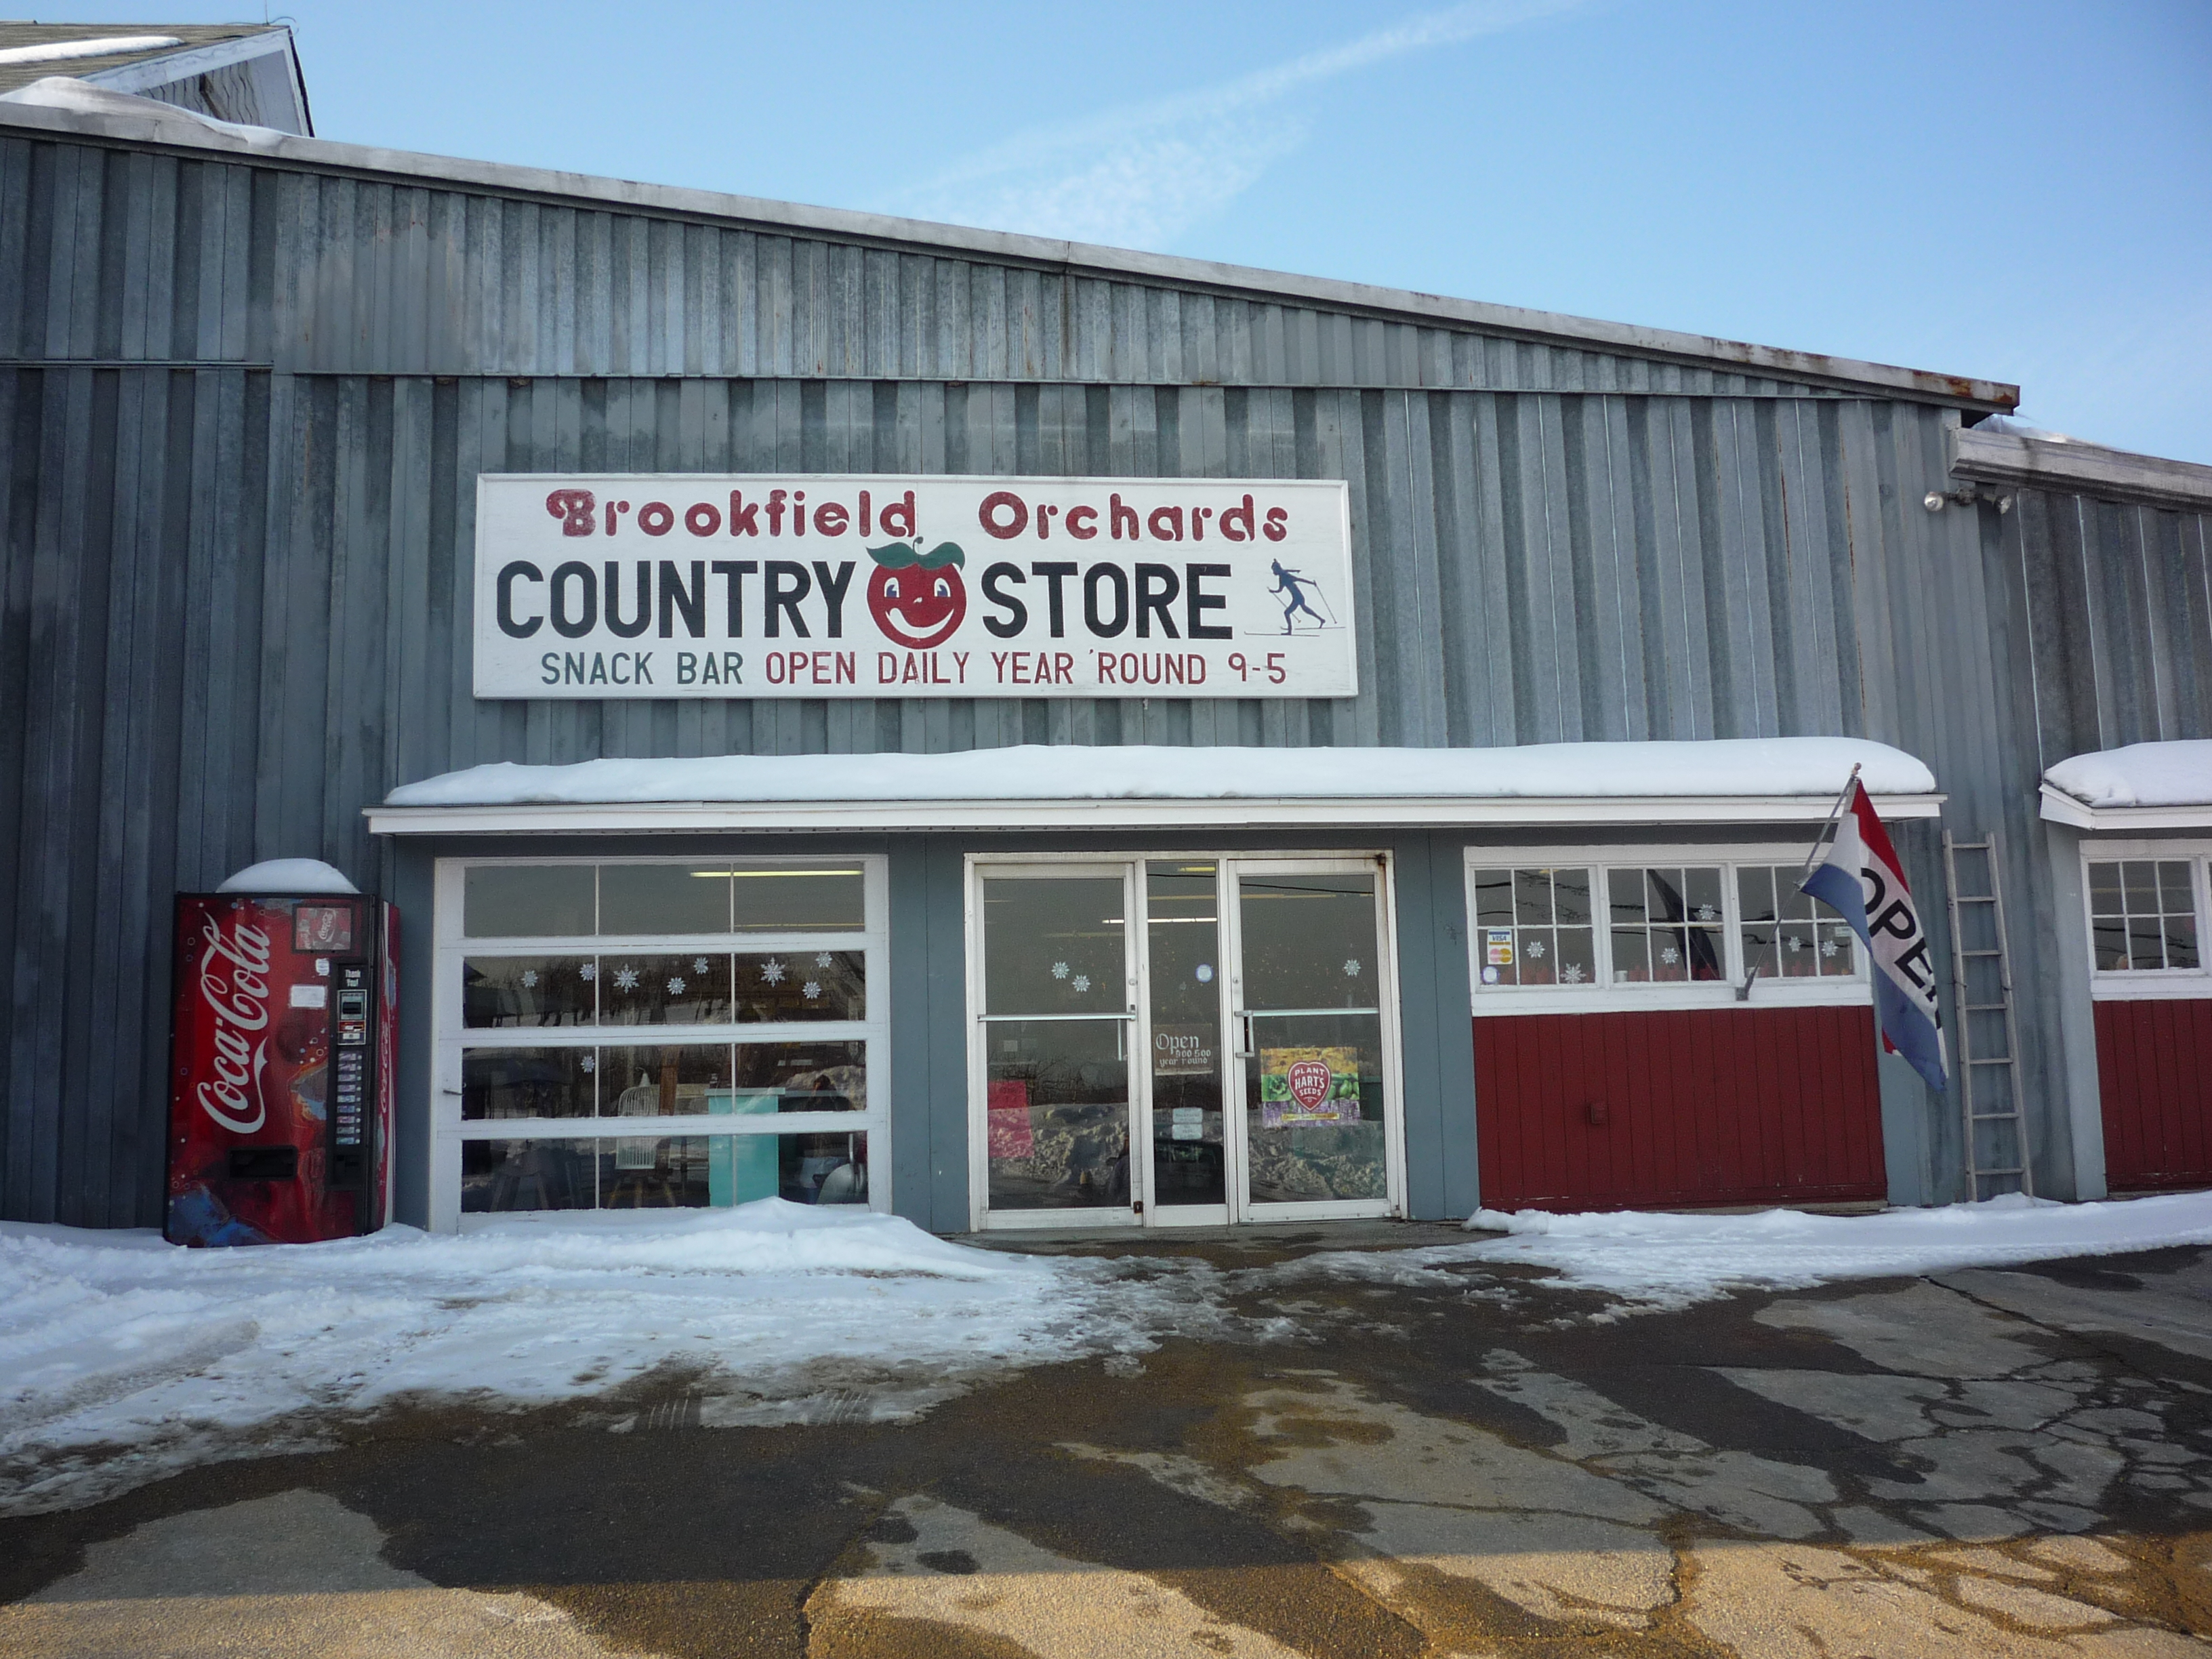 Brookfield Orchards, the Amazing Apple Dumpling and Quaint Country Store